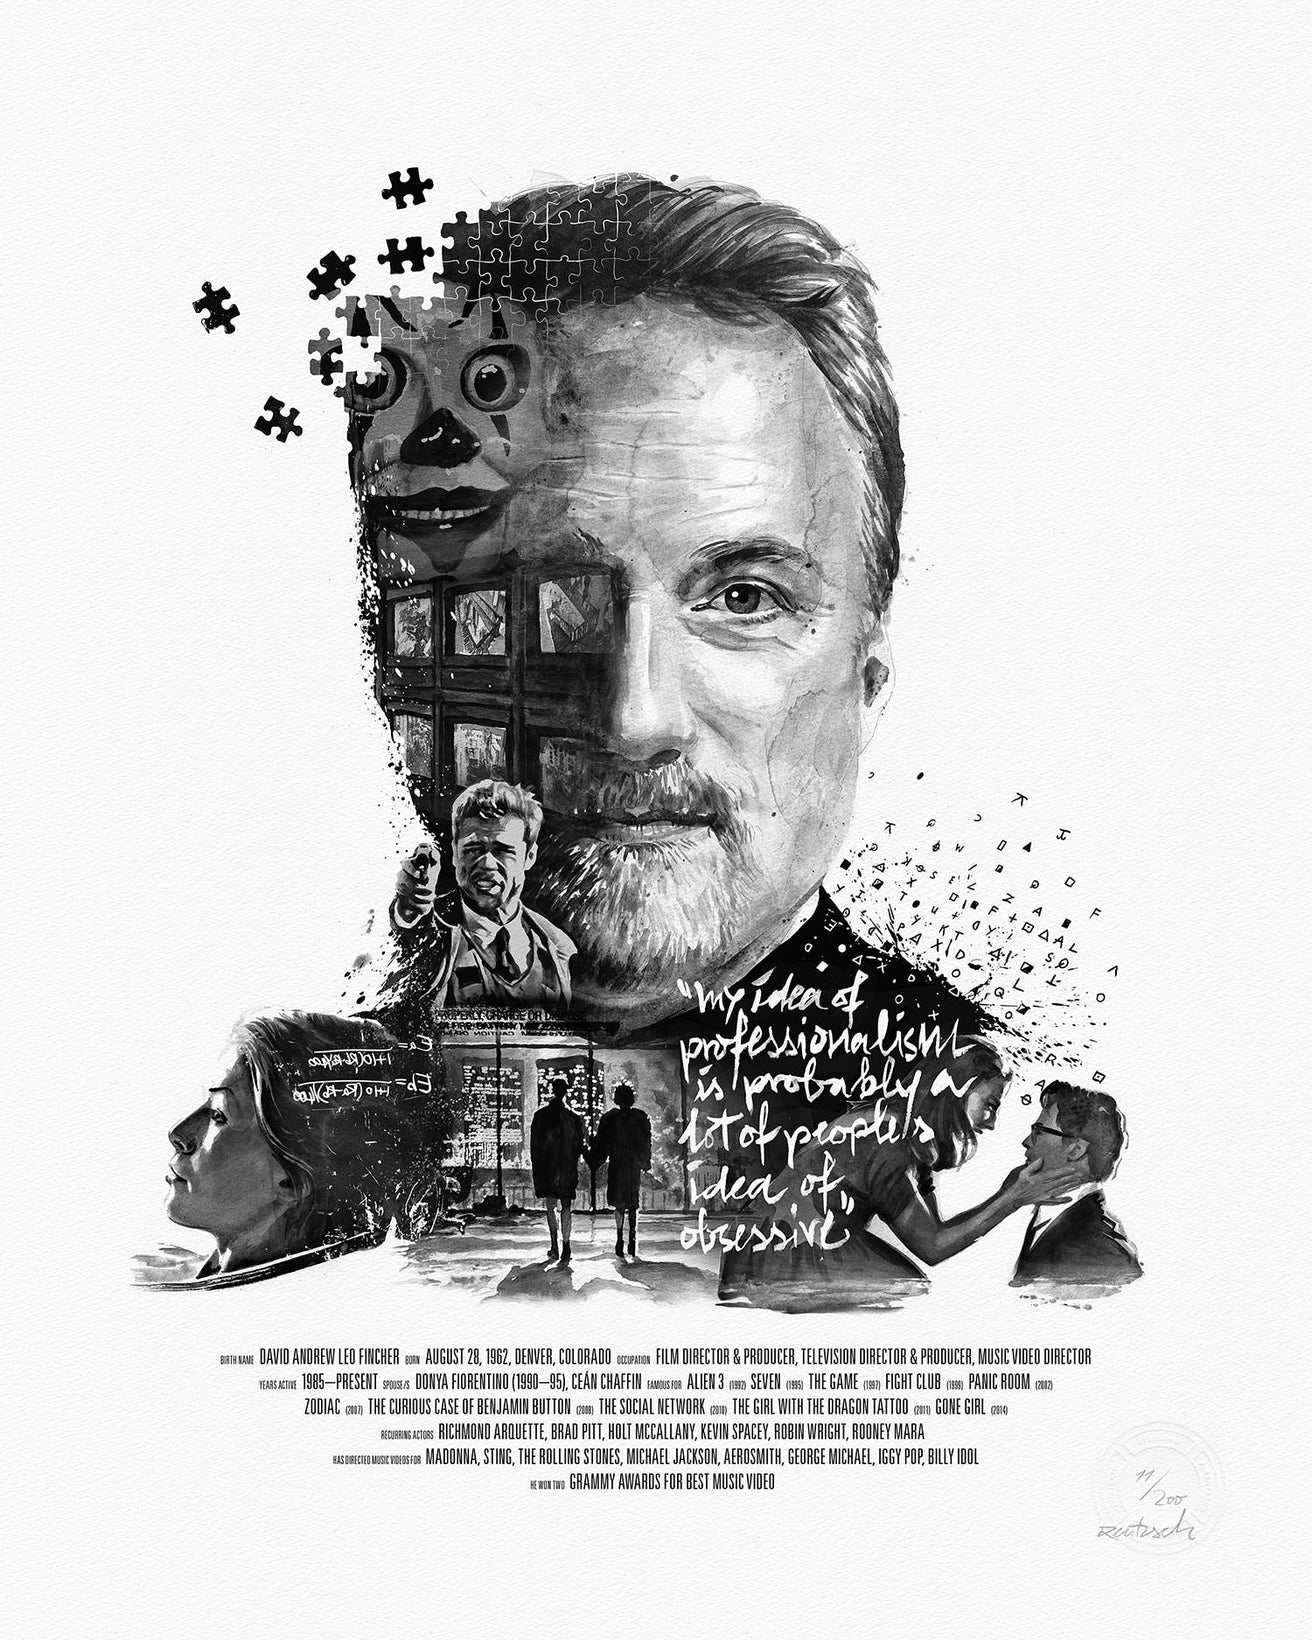 Movie Director Portrait, David Fincher